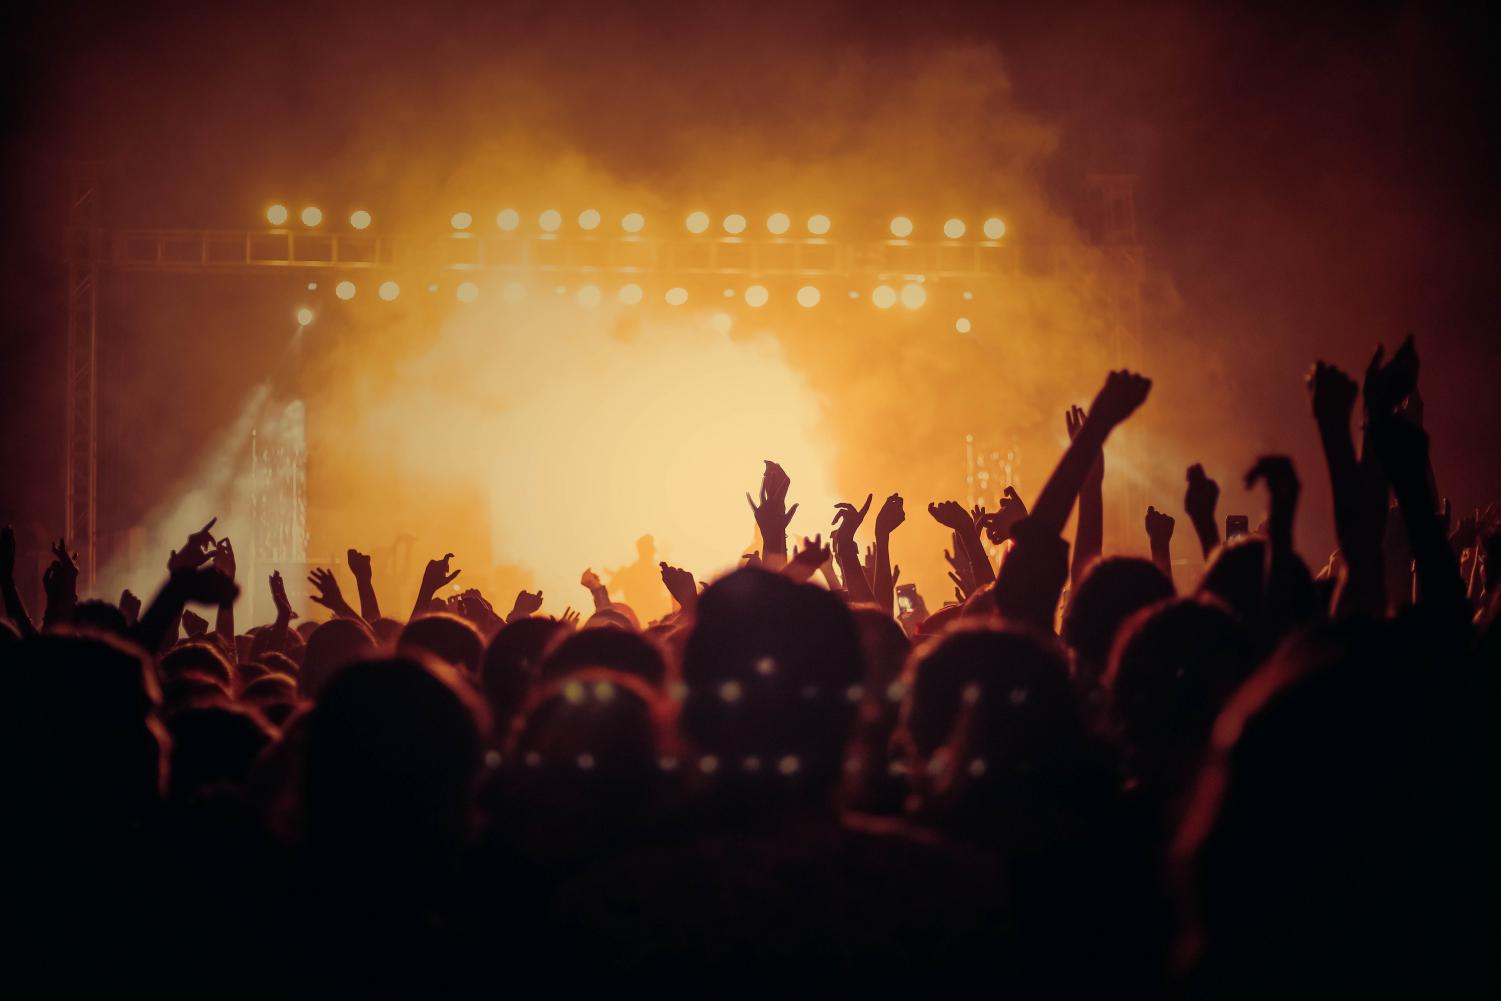 No matter what musical preferences are, there's a concert in 2020.